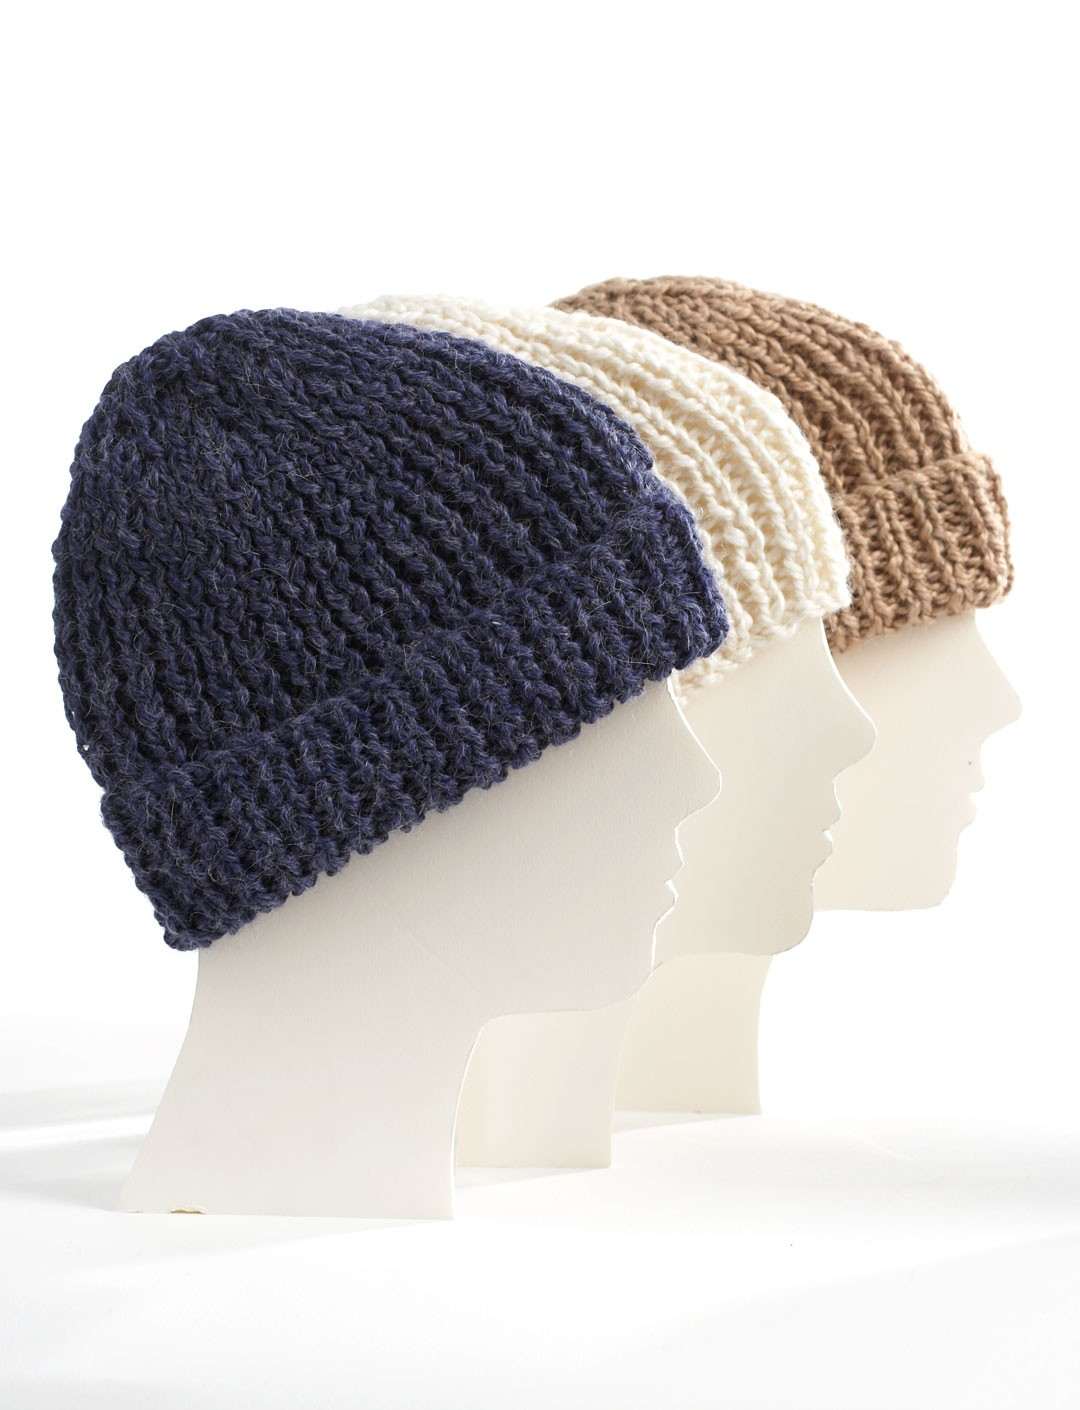 Knitting Patterns For Toques : Bernat Knit Family Toques, Knit Pattern Yarnspirations